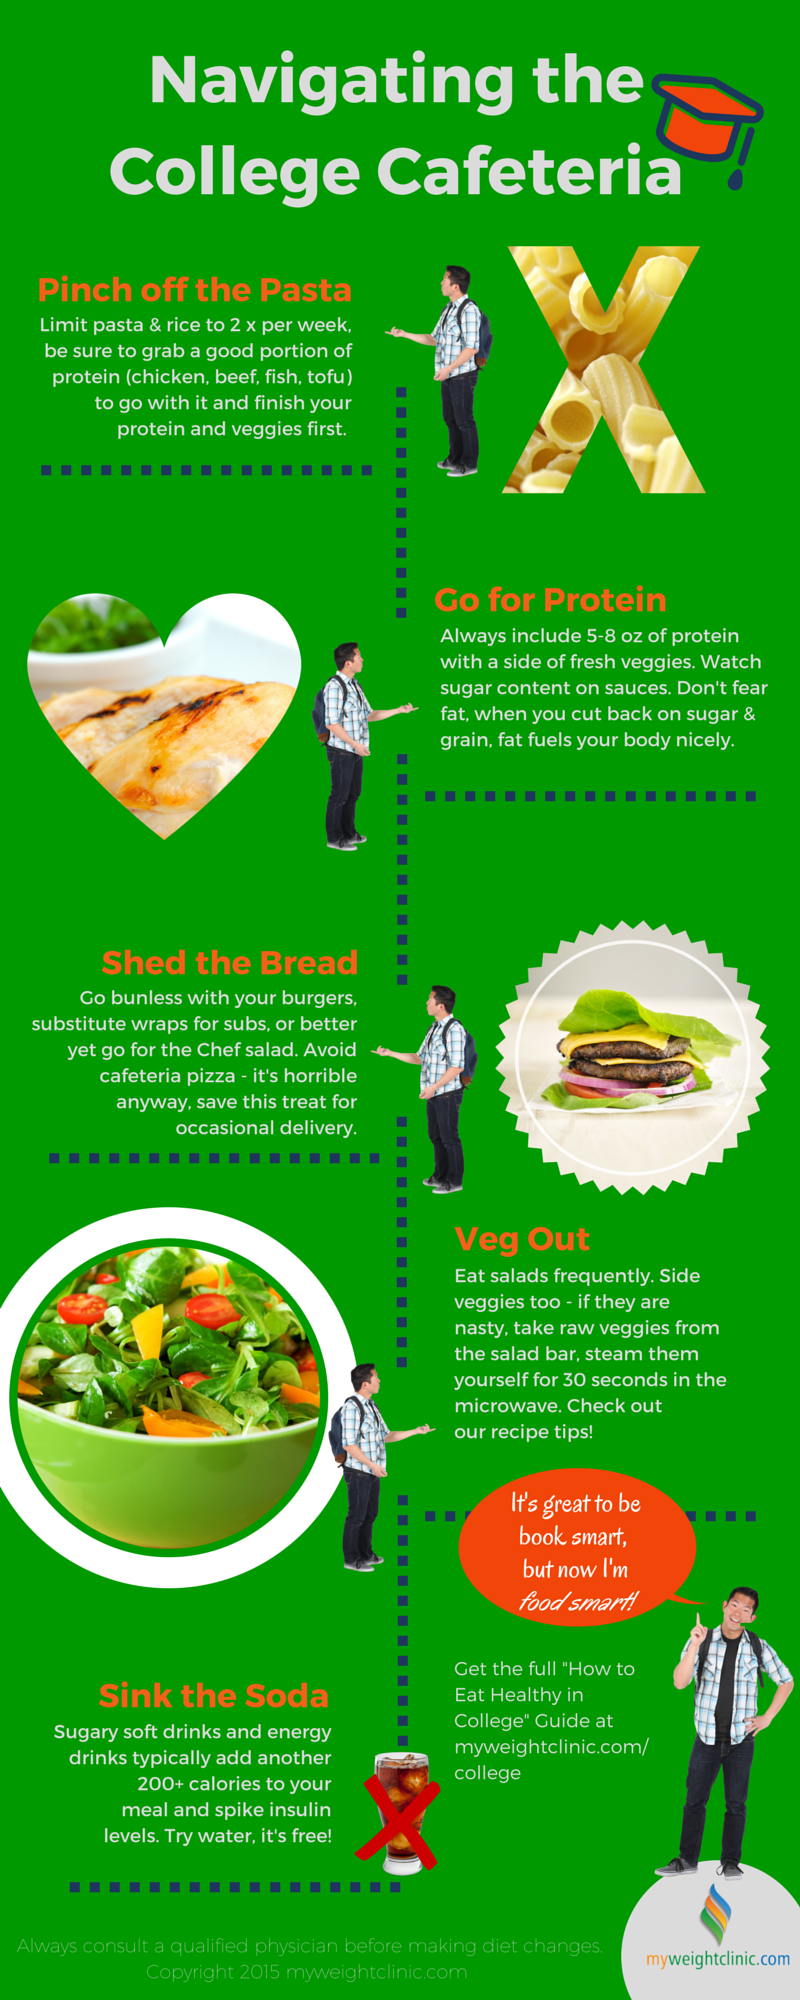 How to eat healthy in college 33 tips pdf navigating the how to eat healthy in college 33 tips pdf navigating the cafeteria infographic weight loss solutions orlando gainesville deland ocala jacksonville forumfinder Images